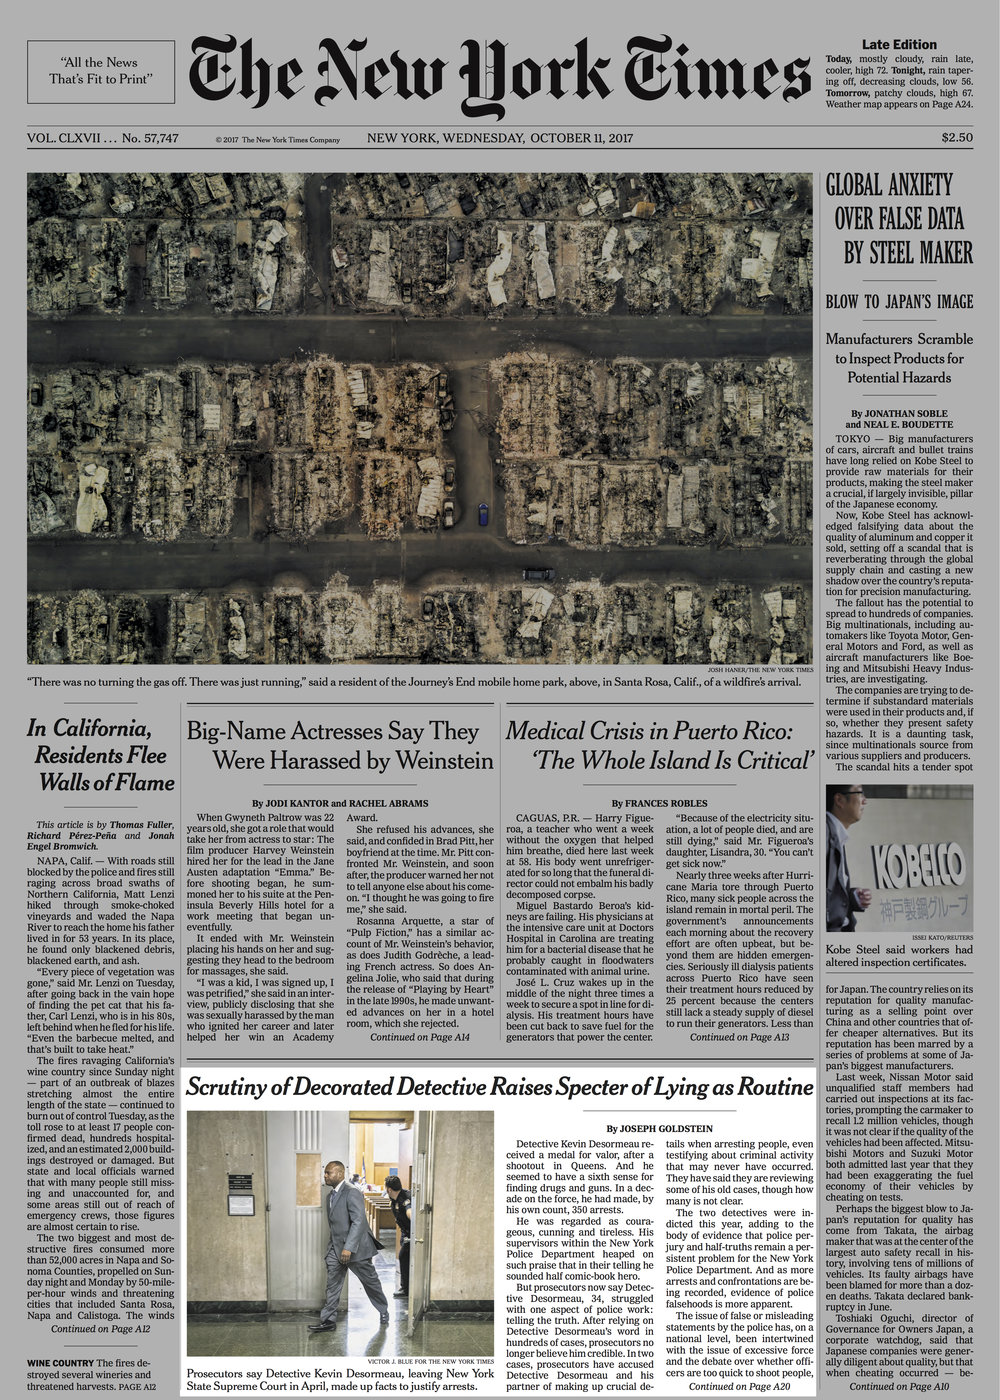 The front page of today's New York Times takes a deep look at the problem of police perjury as illustrated by the firm's cases and others. -